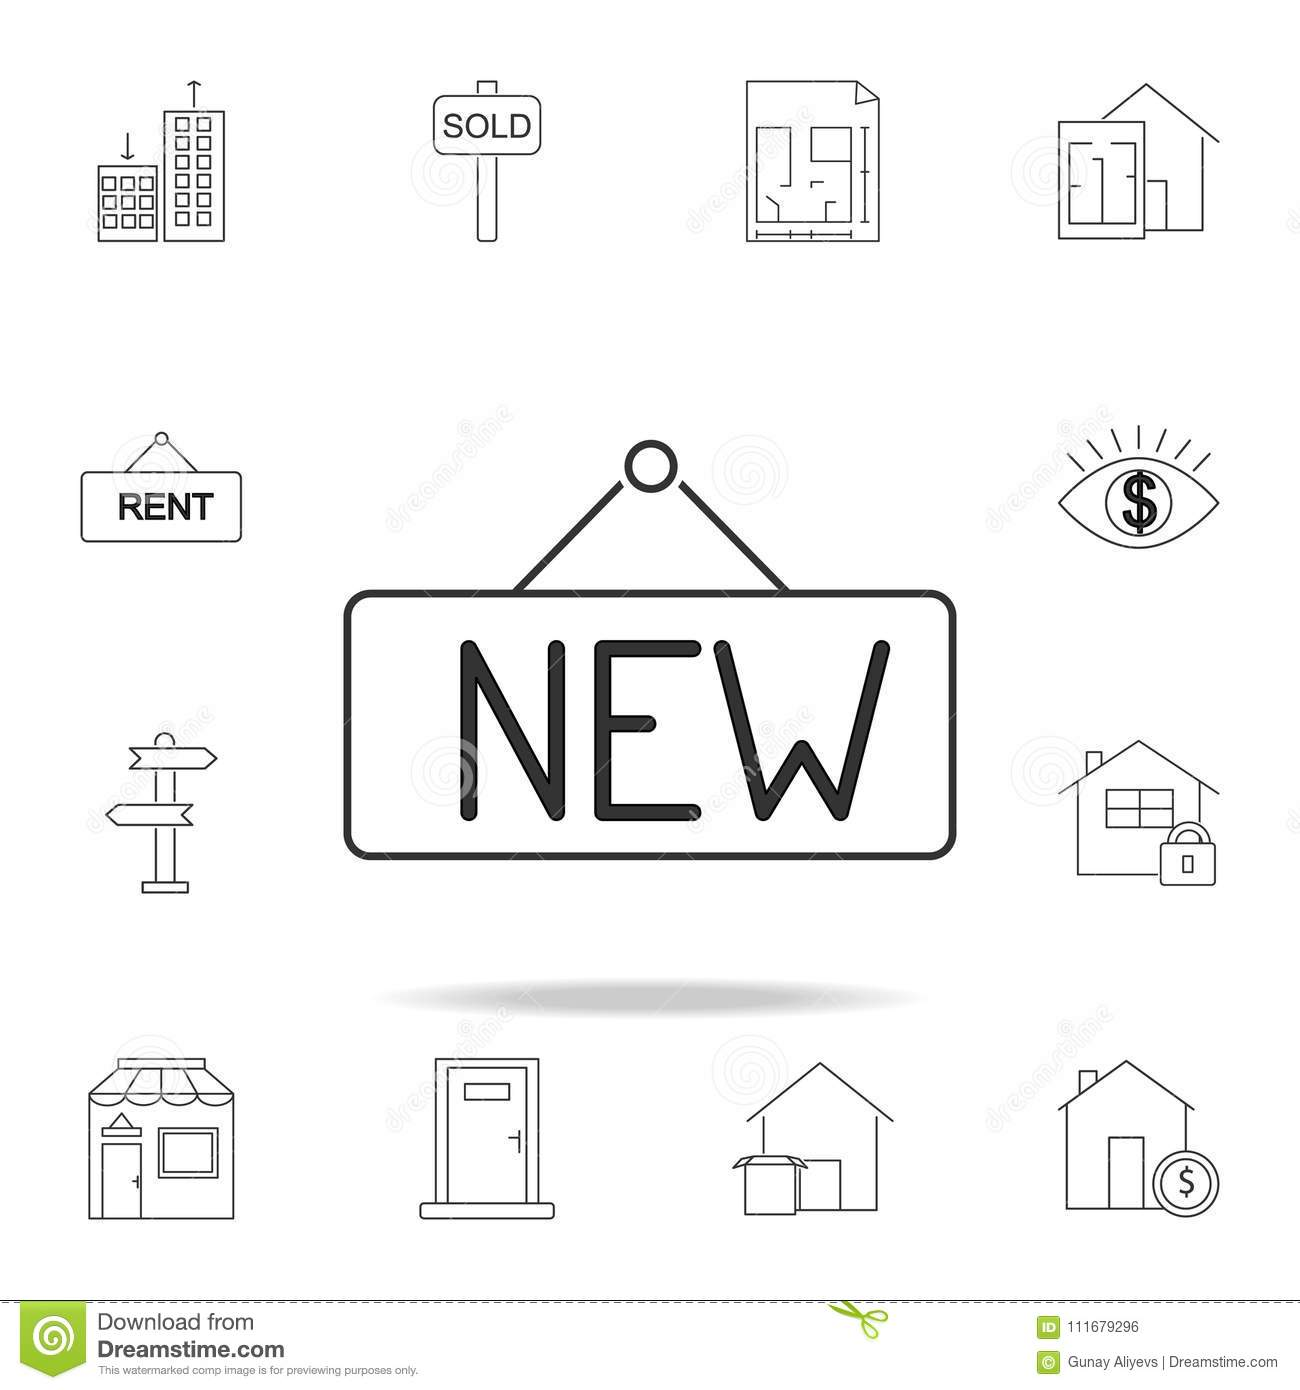 New sign line icon. Set of sale real estate element icons. Premium quality graphic design. Signs, outline symbols collection icon